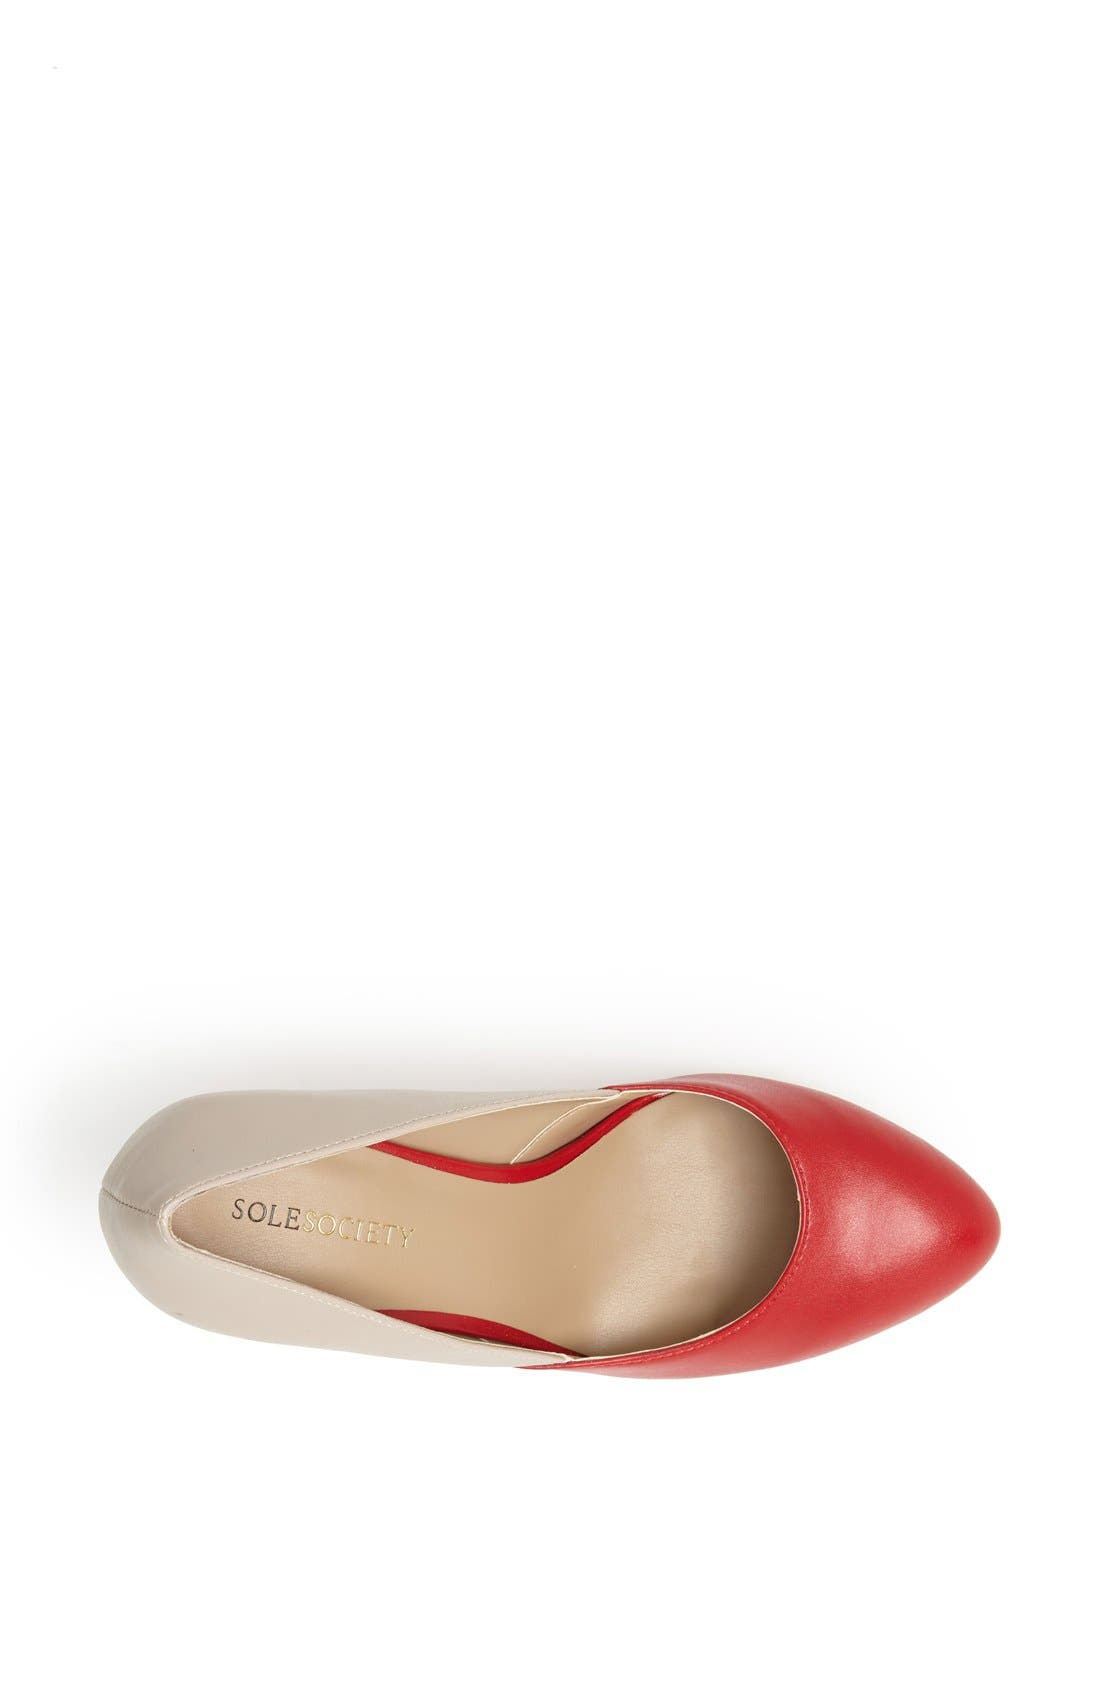 Alternate Image 3  - Sole Society 'Maile' Pump